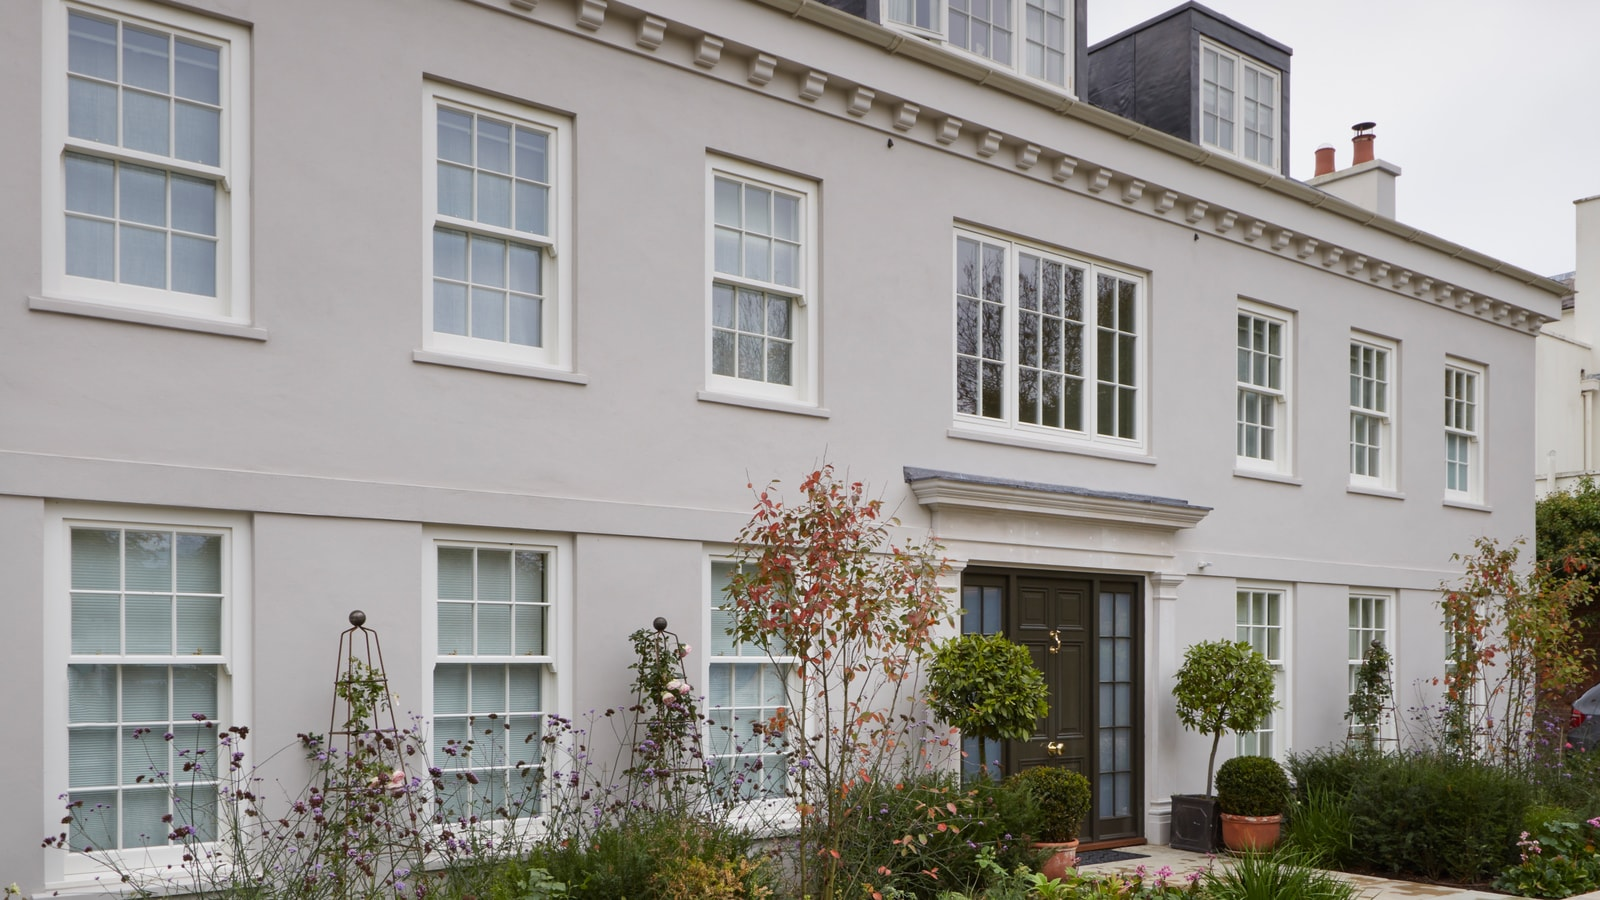 Stylish London home renovated with timber sash windows and doors